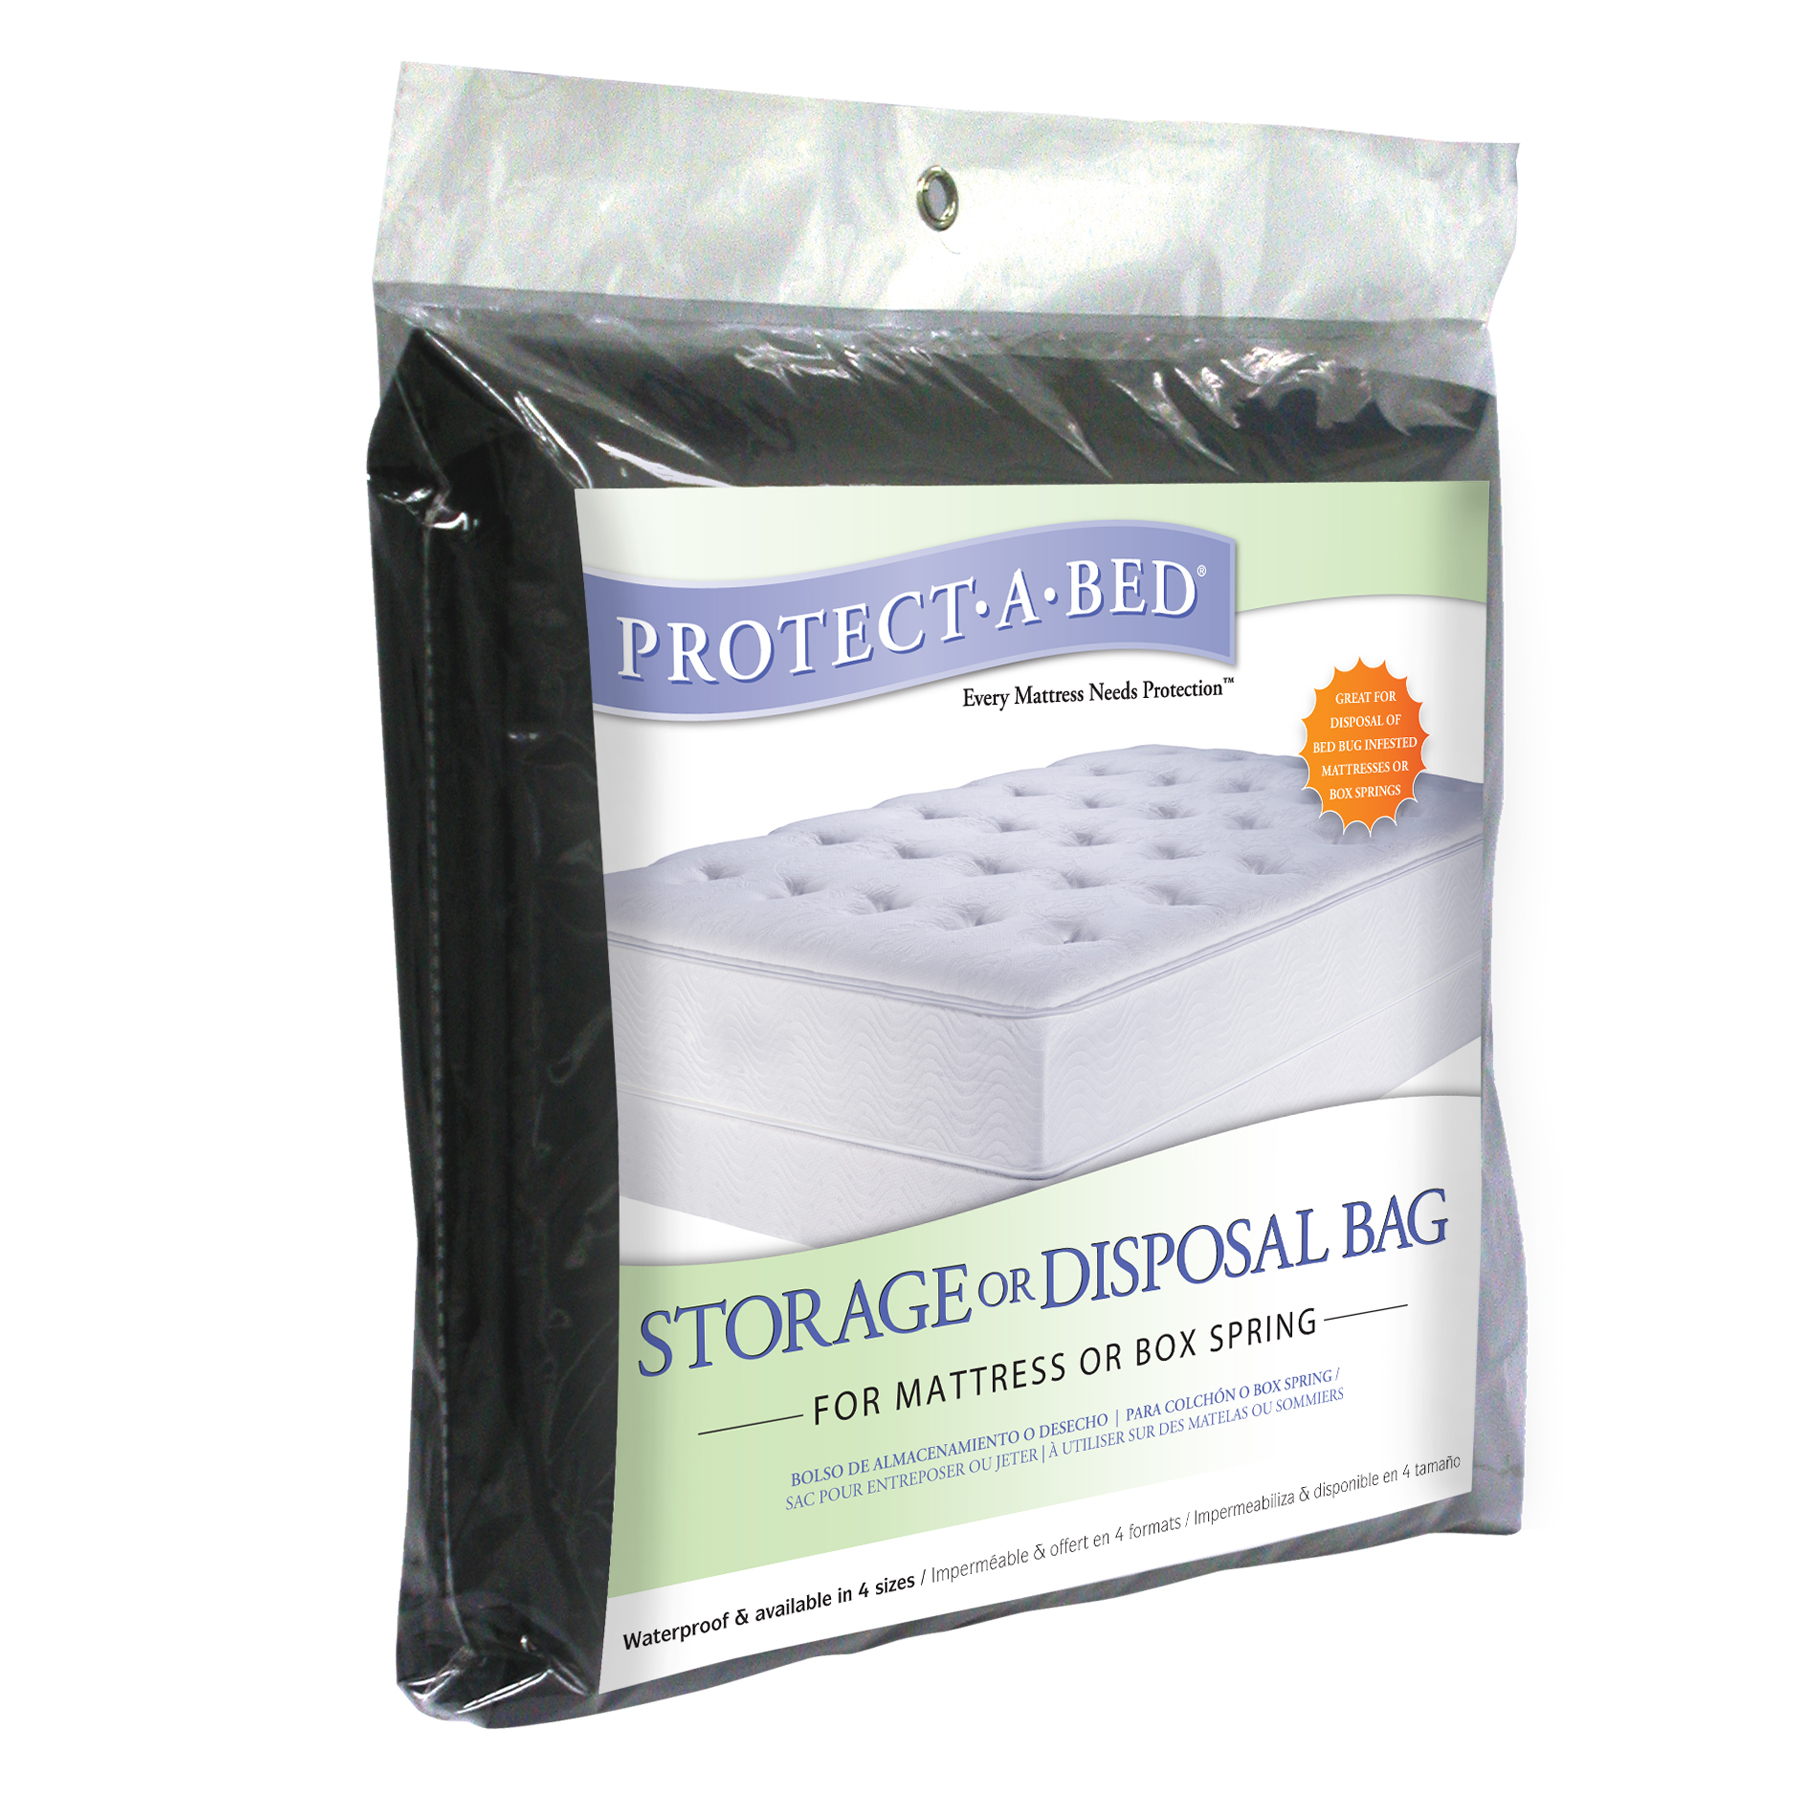 ProtectABed Storage or Disposal Bag for Mattress or Box